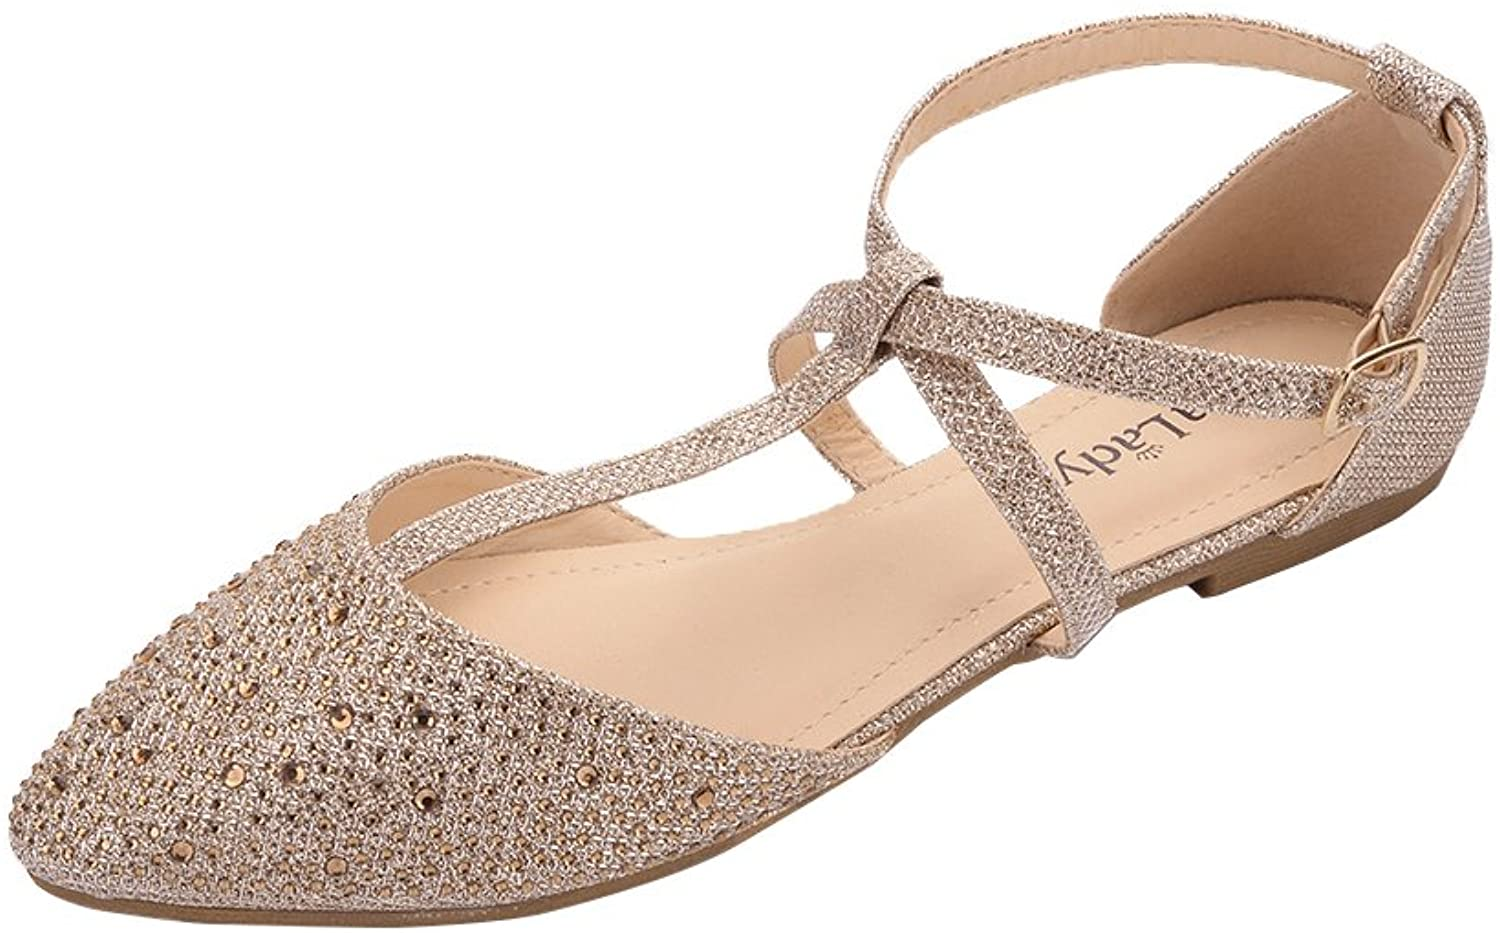 Max Sale Special Price 49% OFF Mila Lady Laurel Womens Pointed Toe Ankle D'Orsay Strap T-Strap